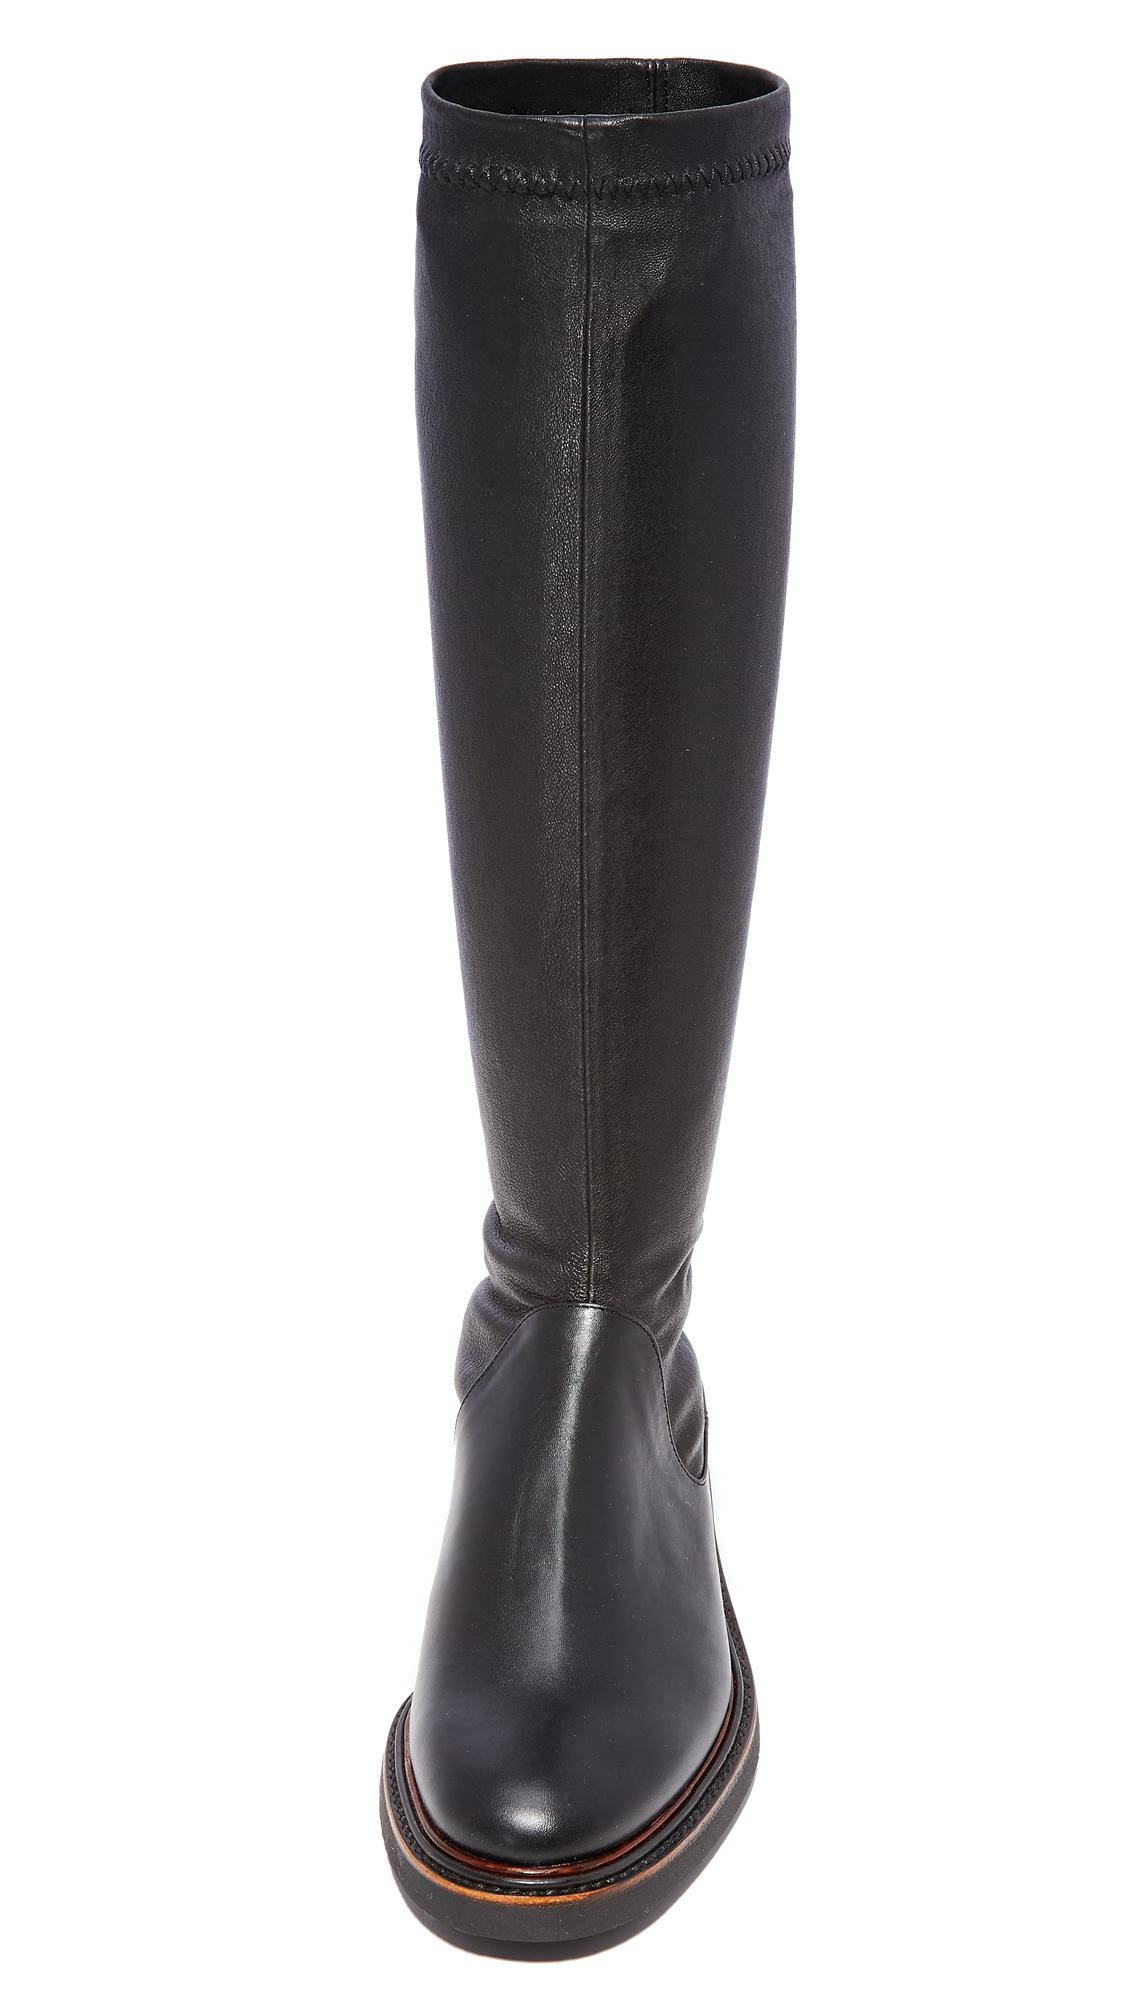 Robert Clergerie Leather Jeto Tall Boots in Black